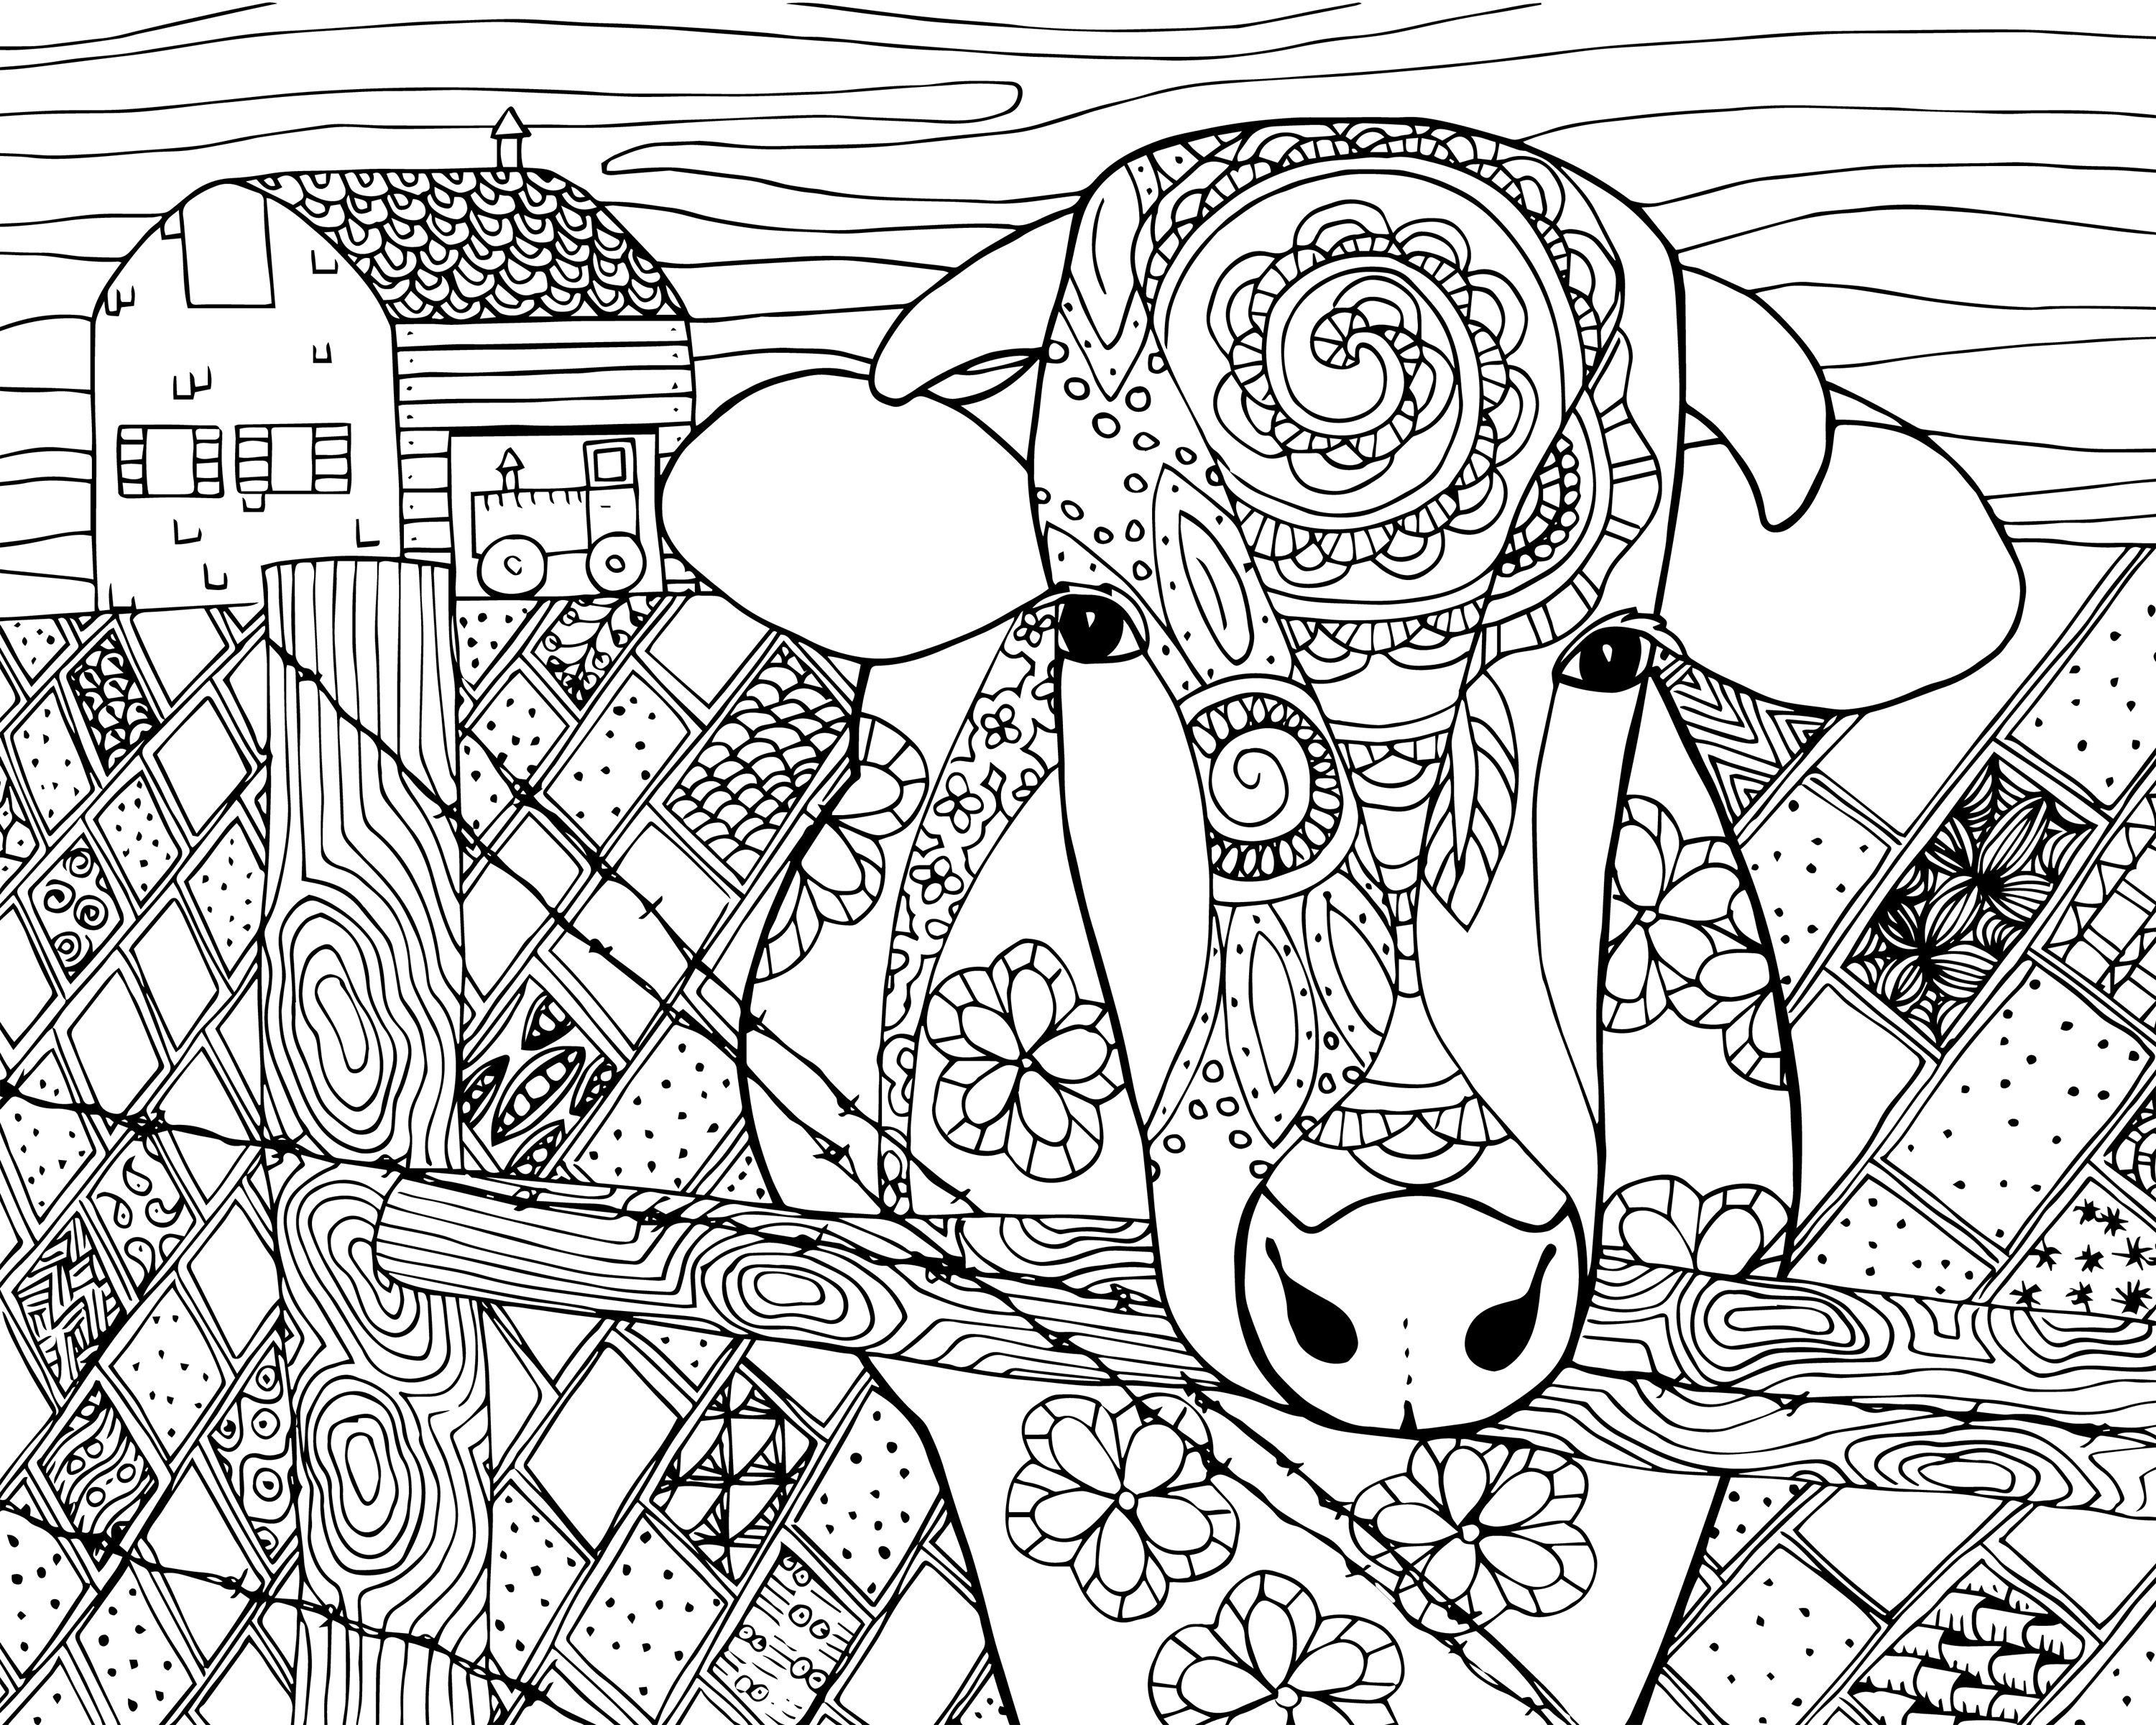 25 Best Picture Of Cow Coloring Page Davemelillo Com Cow Coloring Pages Abstract Coloring Pages Farm Animal Coloring Pages